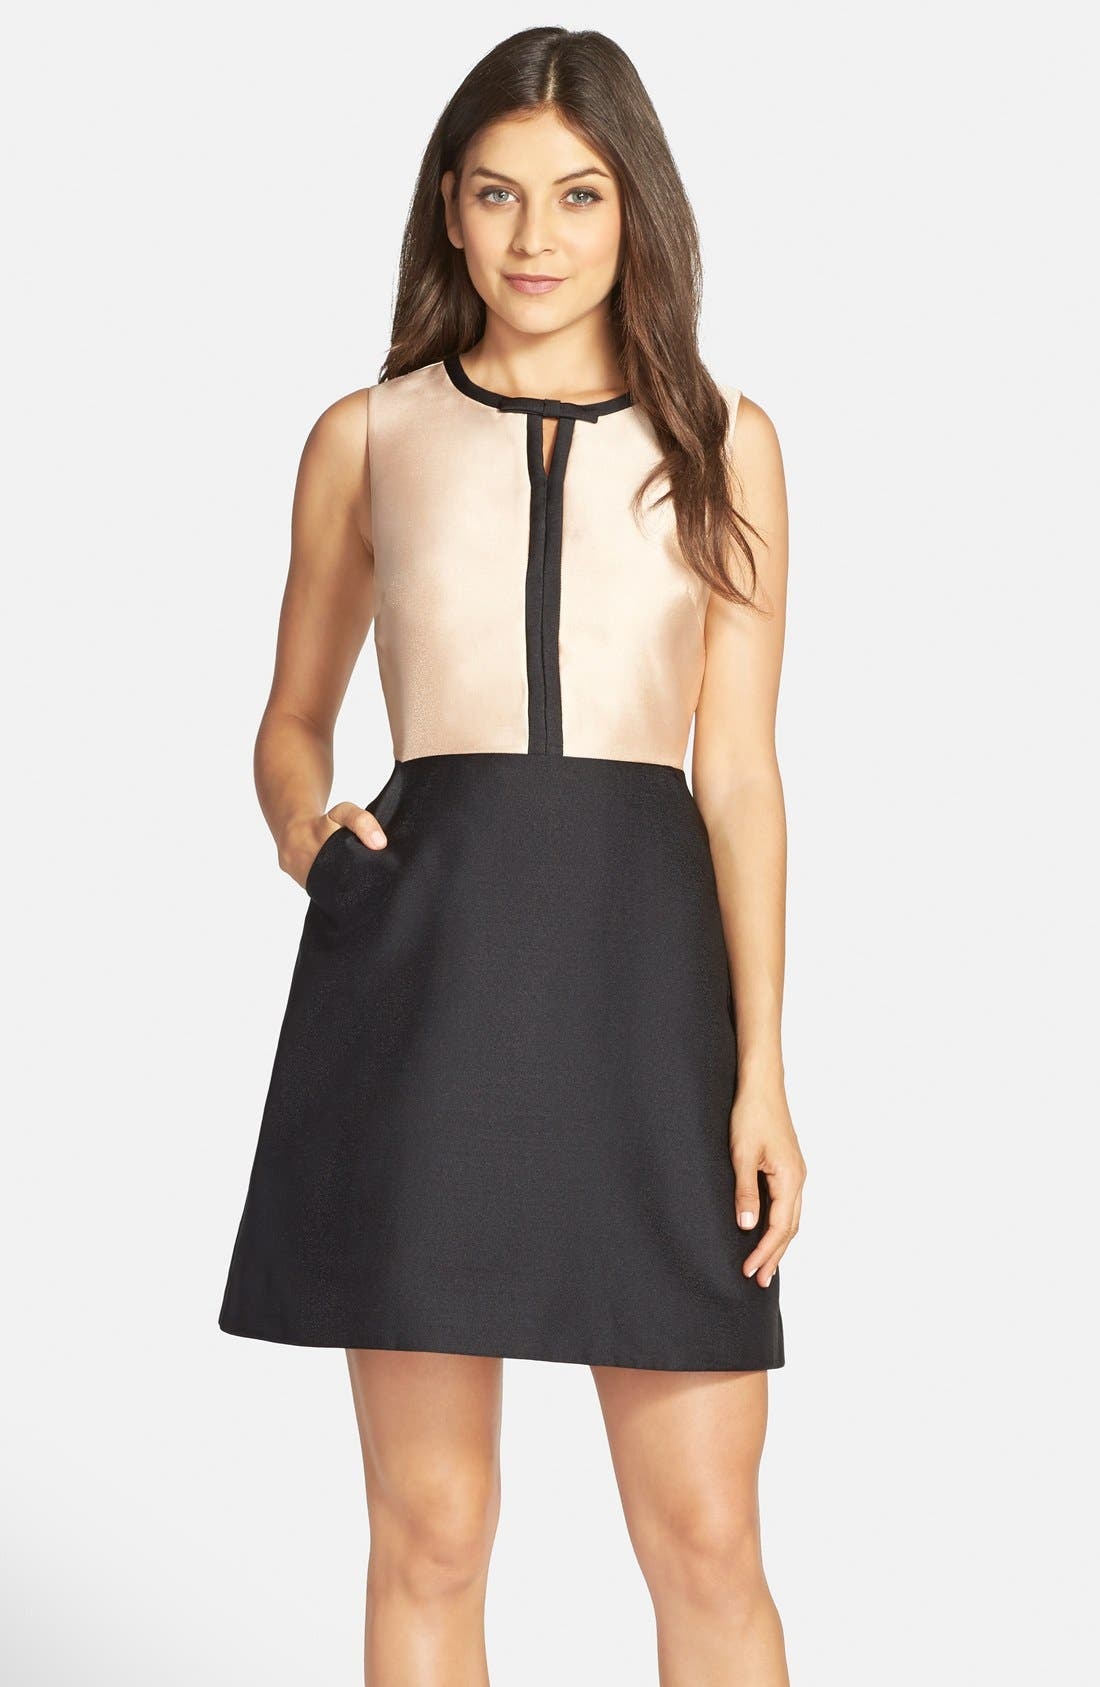 Main Image - ERIN erin fetherston 'Eliza' Colorblock Twill Fit & Flare Dress